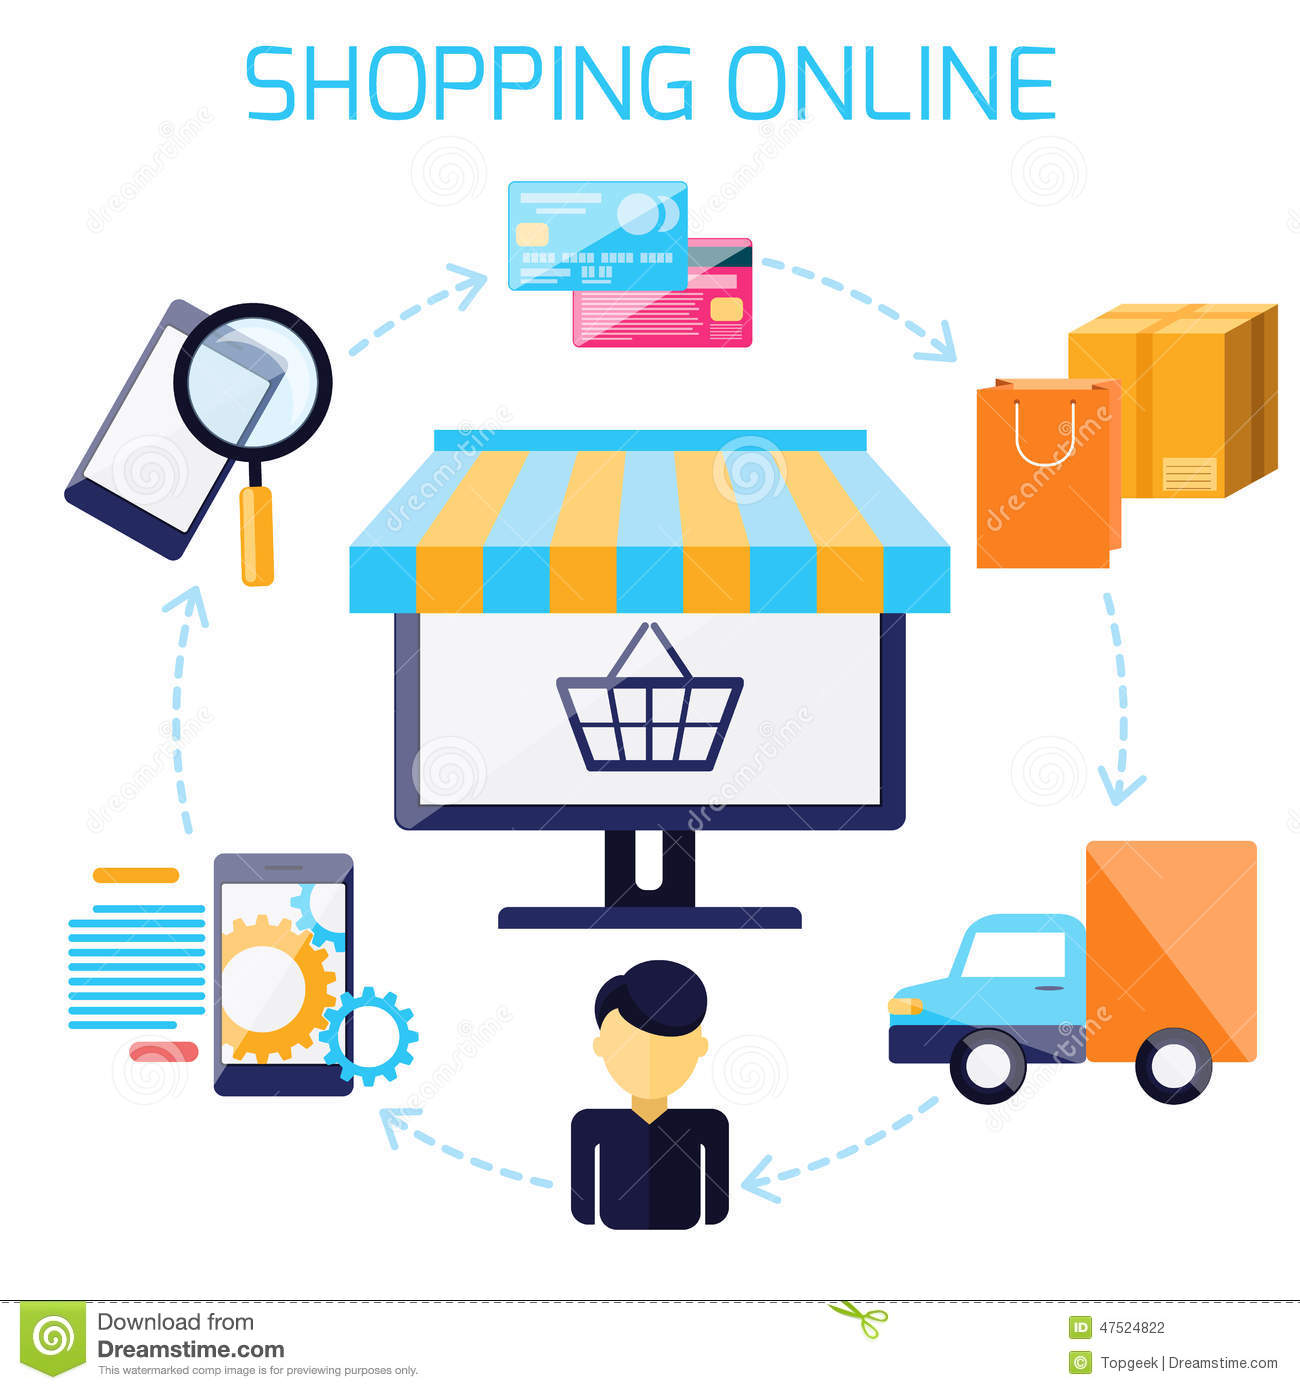 Online Shopping Mode Of Payment Infographic Of Sequence For Online Shopping Stock Vector